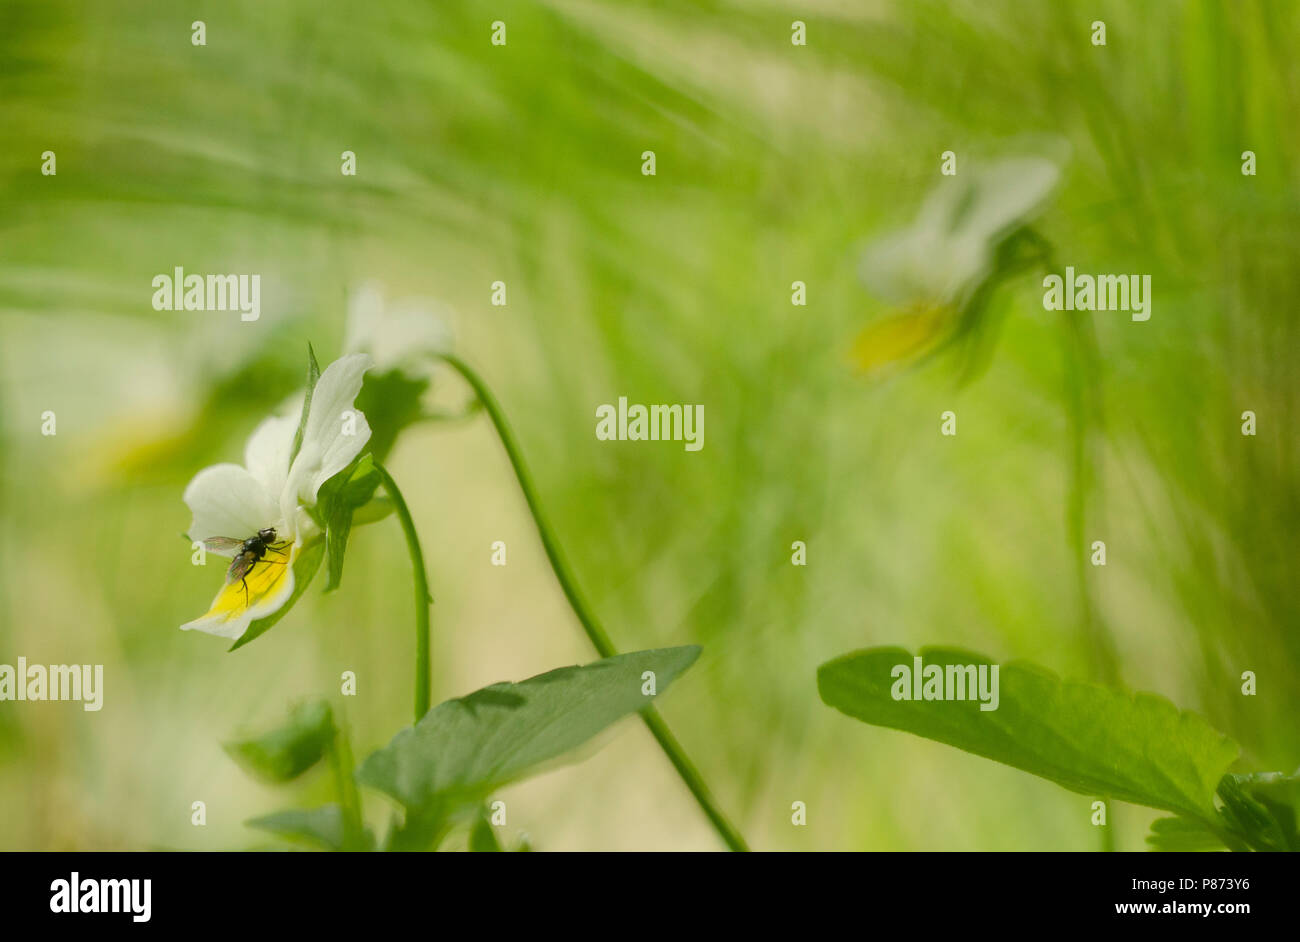 Akkerviool met vlieg, Field Pansy with fly - Stock Image